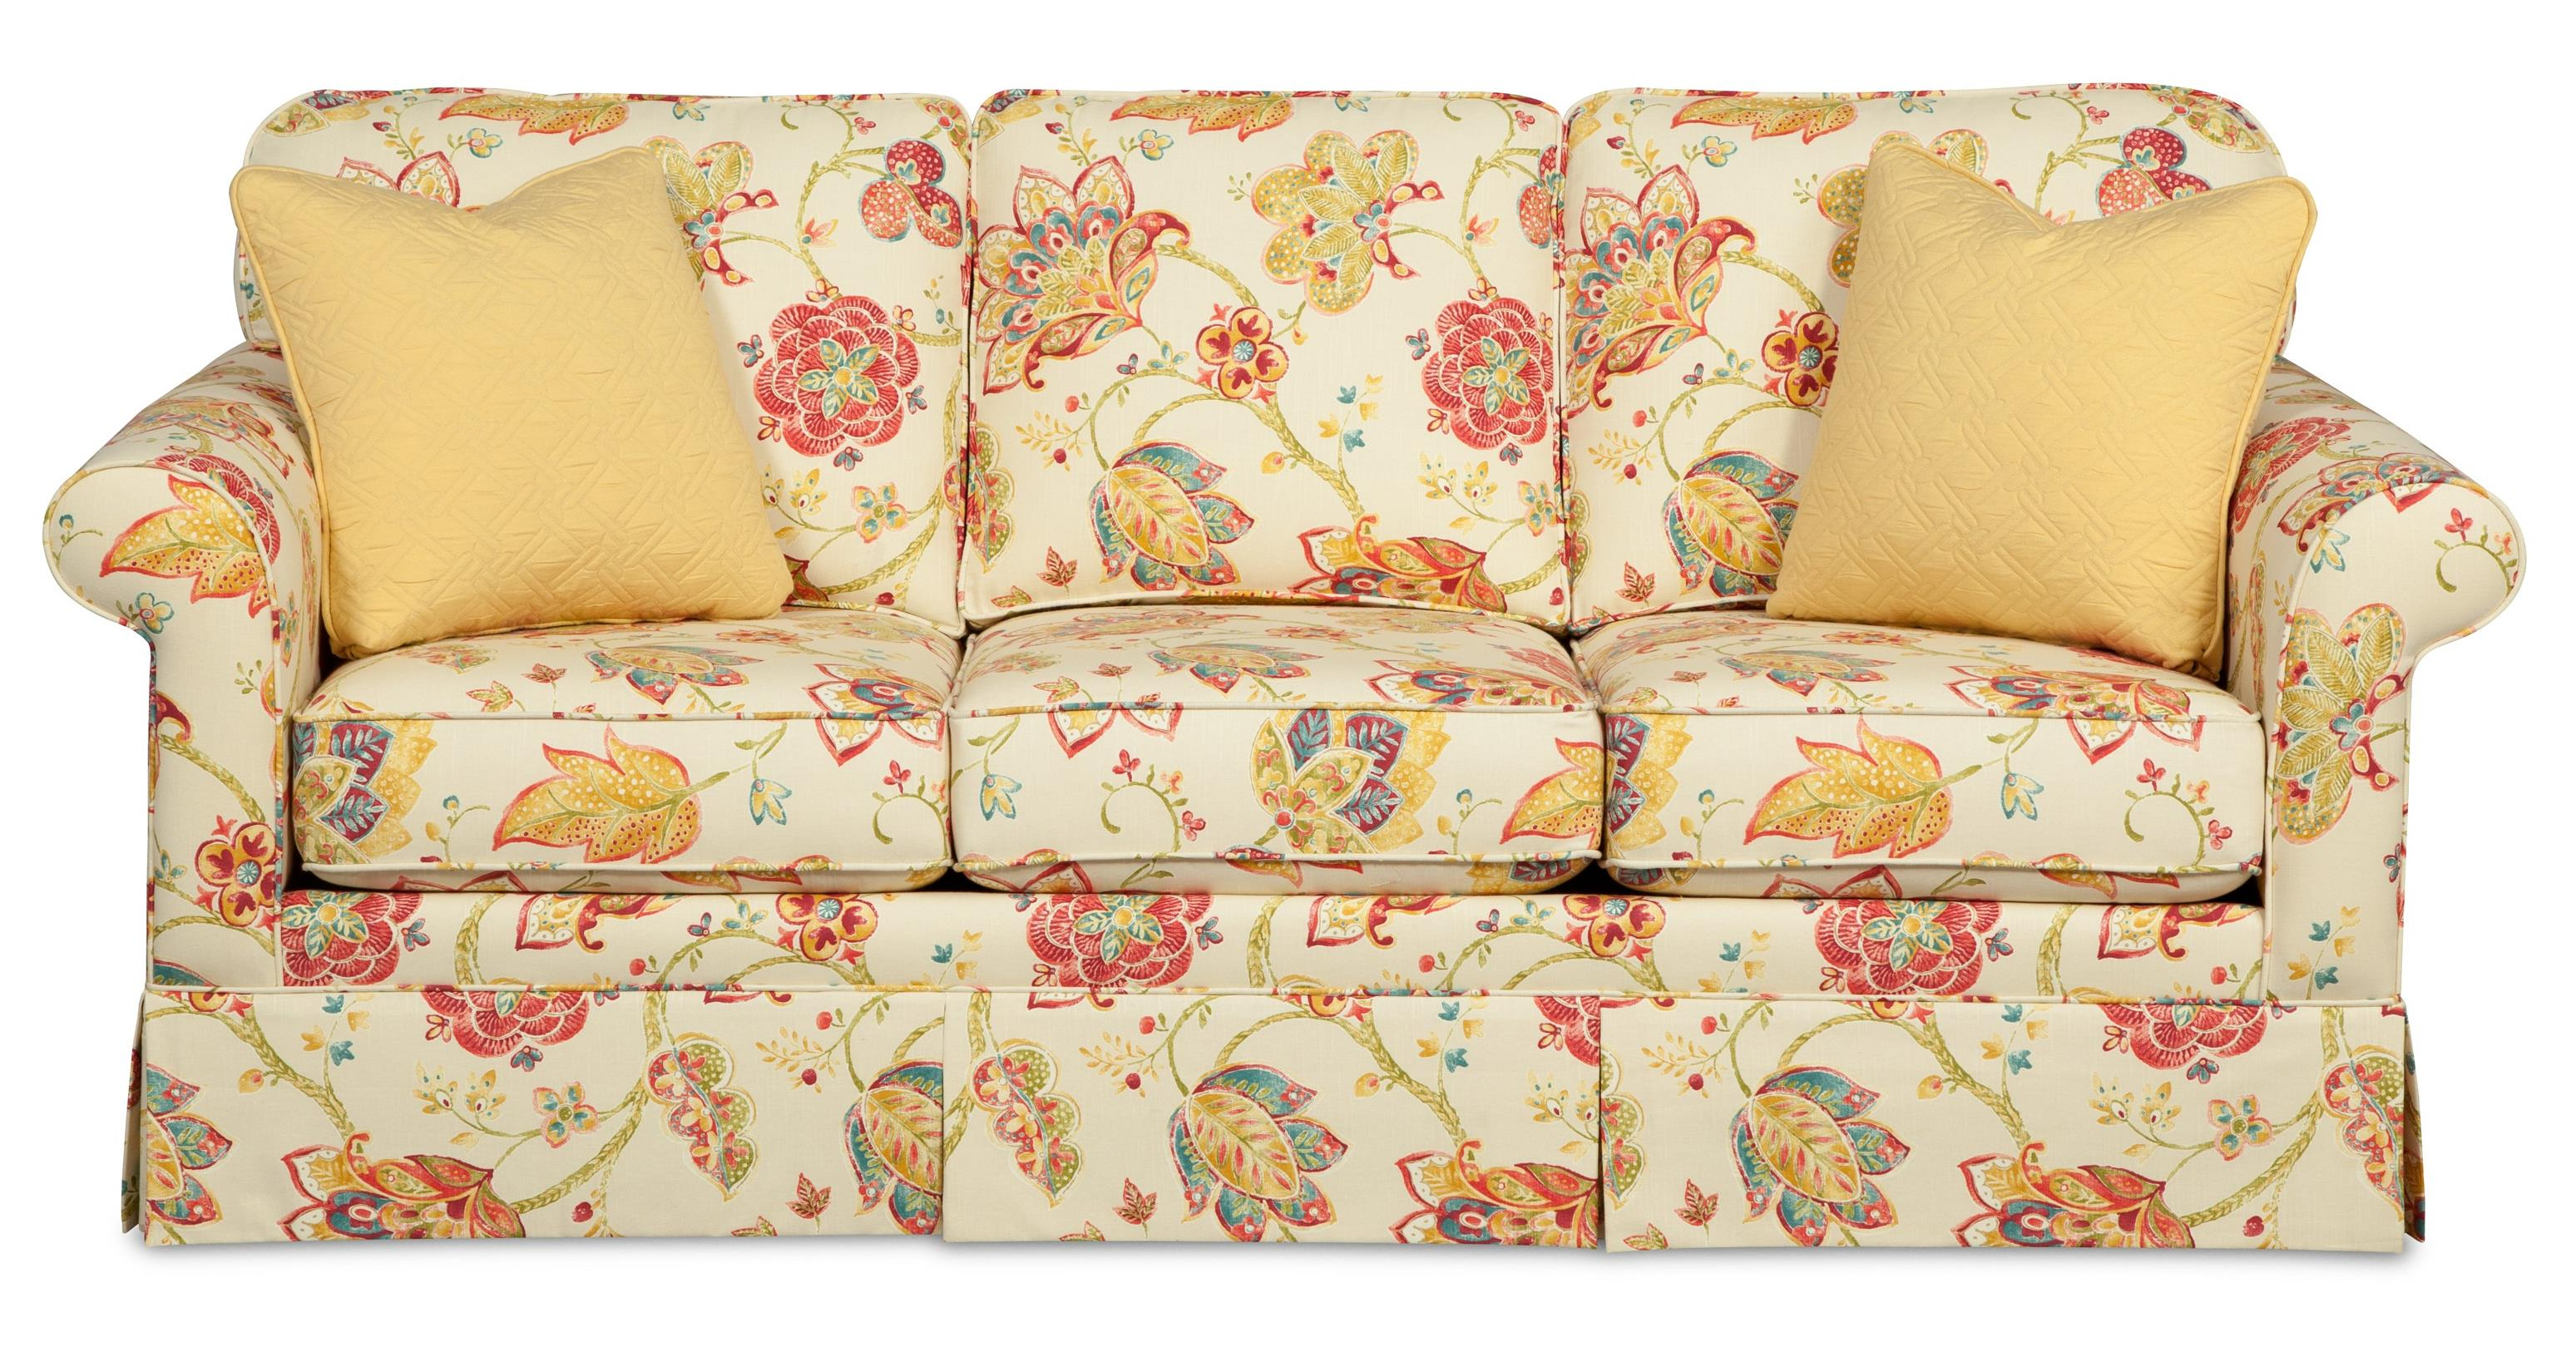 Traditional Sofa With Kick Pleat Skirt